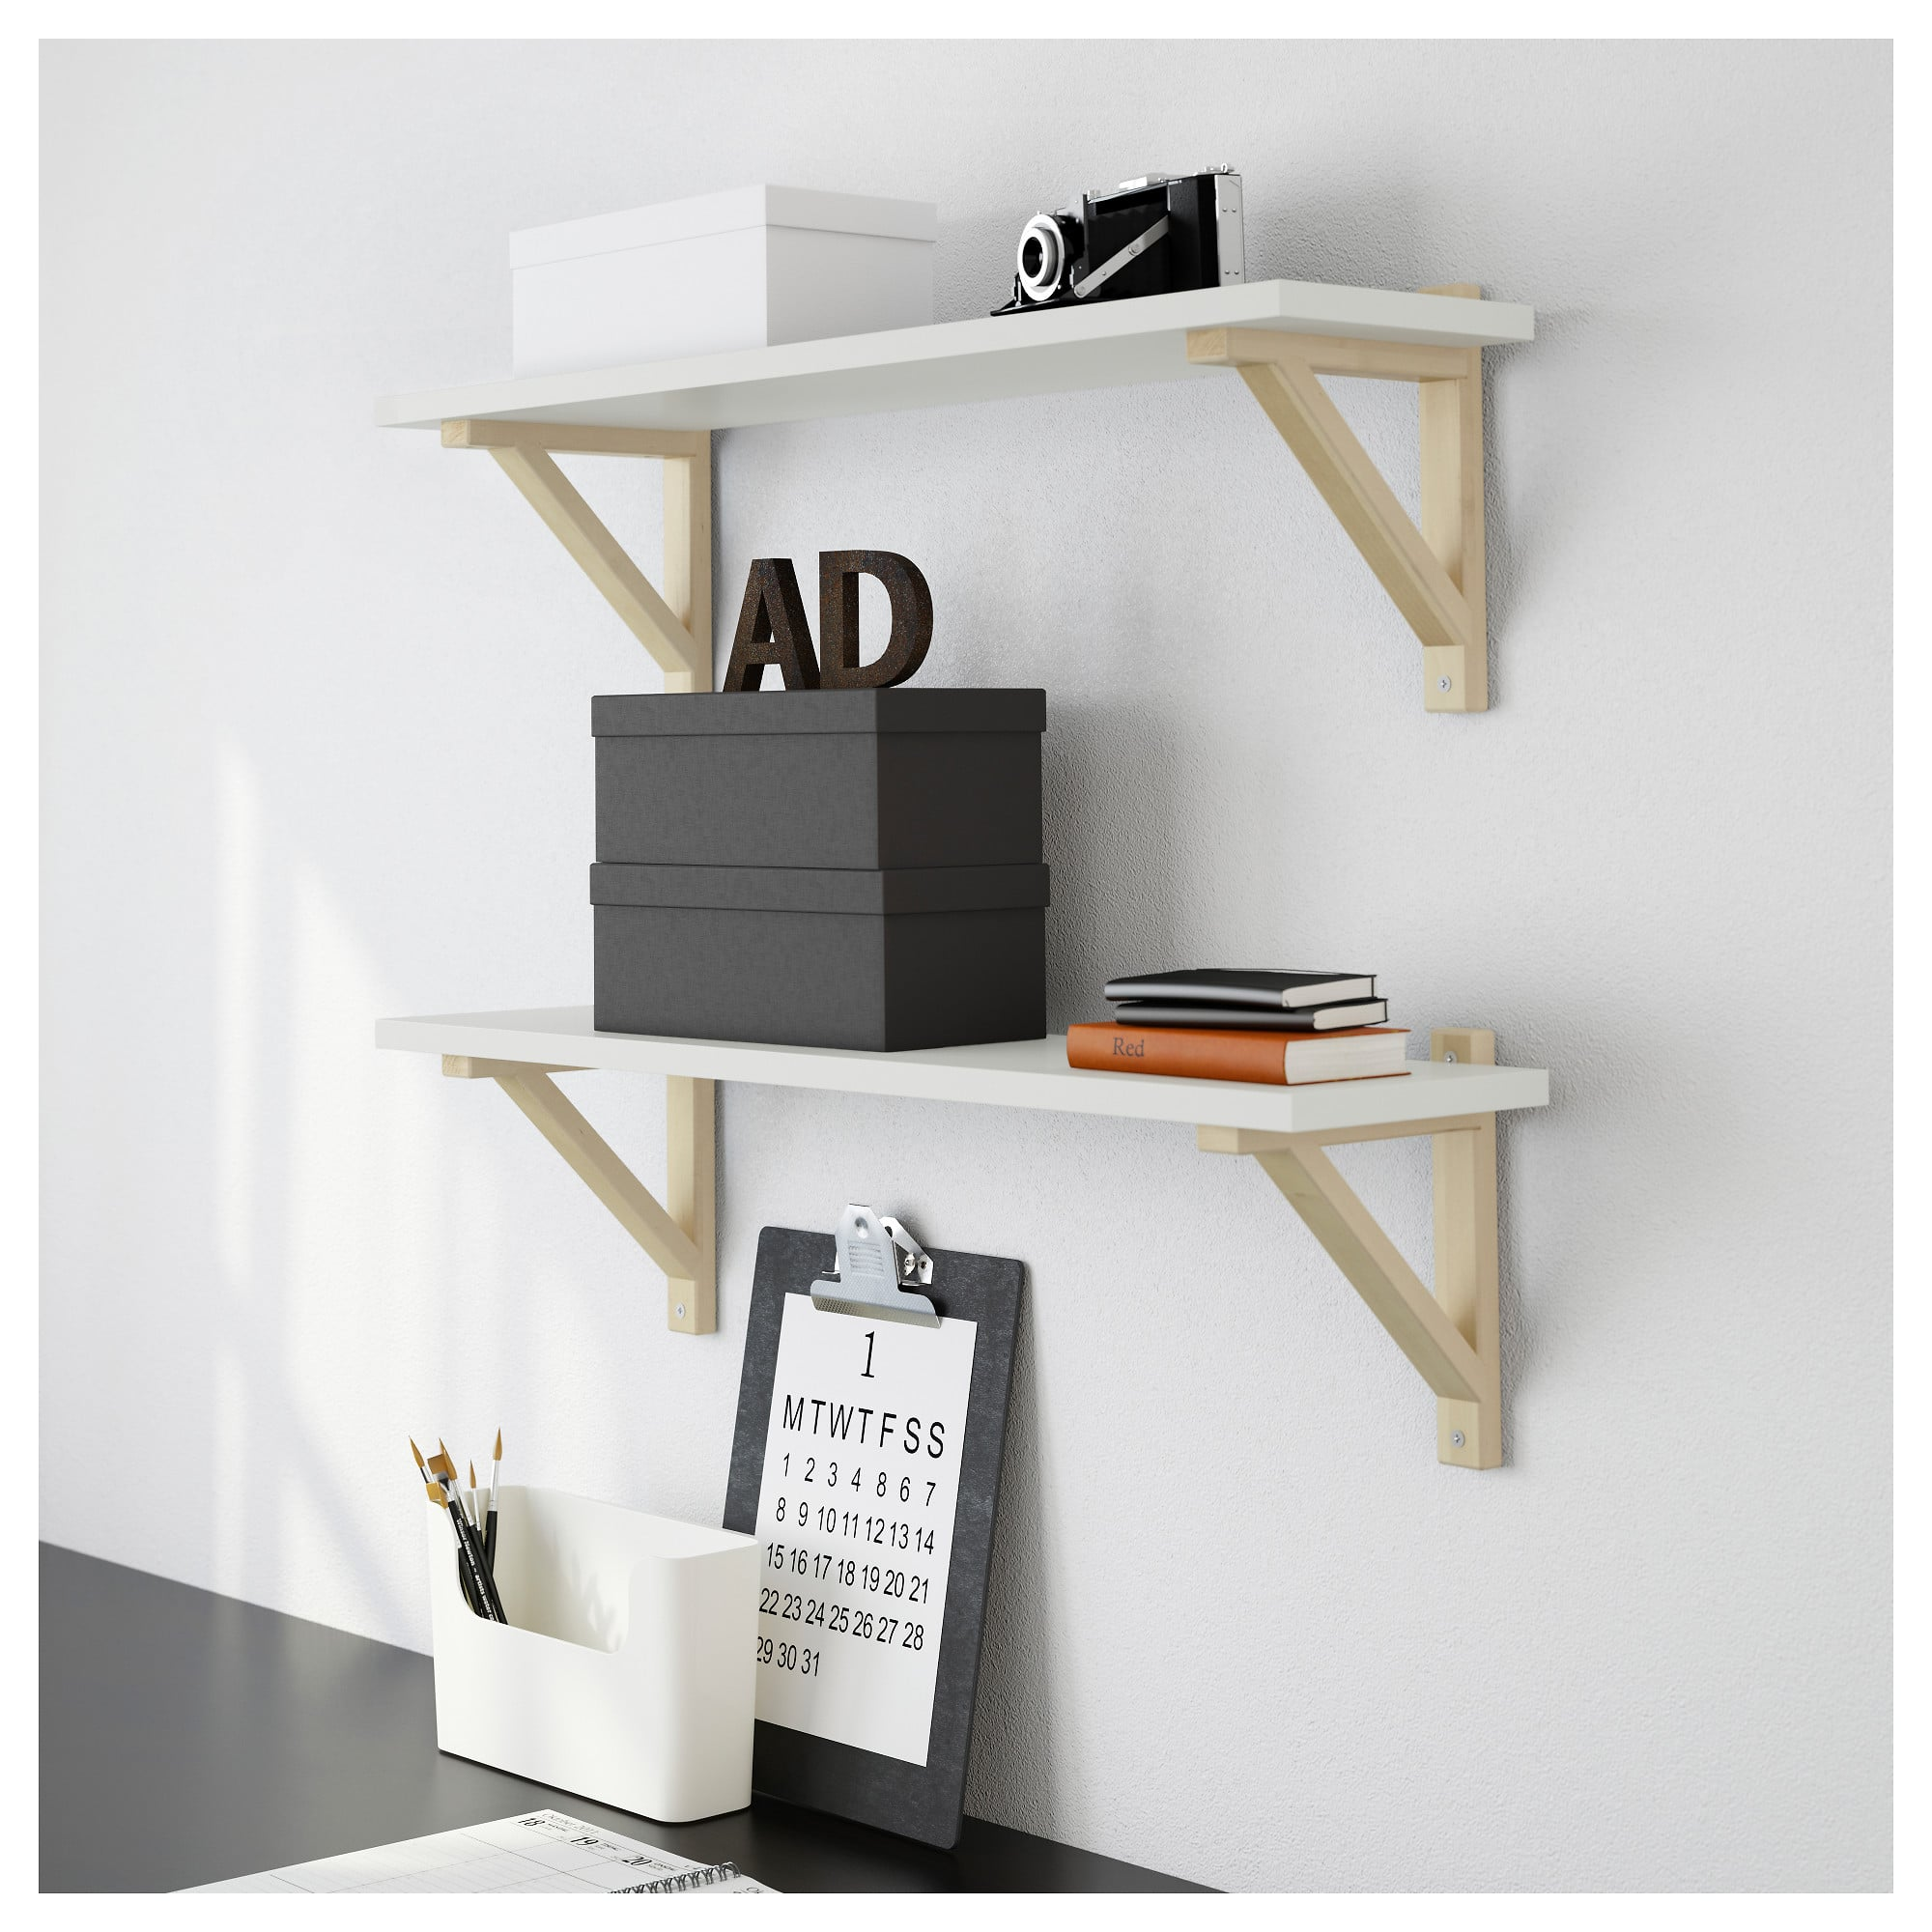 Wall Shelf Best Ikea Bedroom Products Popsugar Home Australia Photo 6